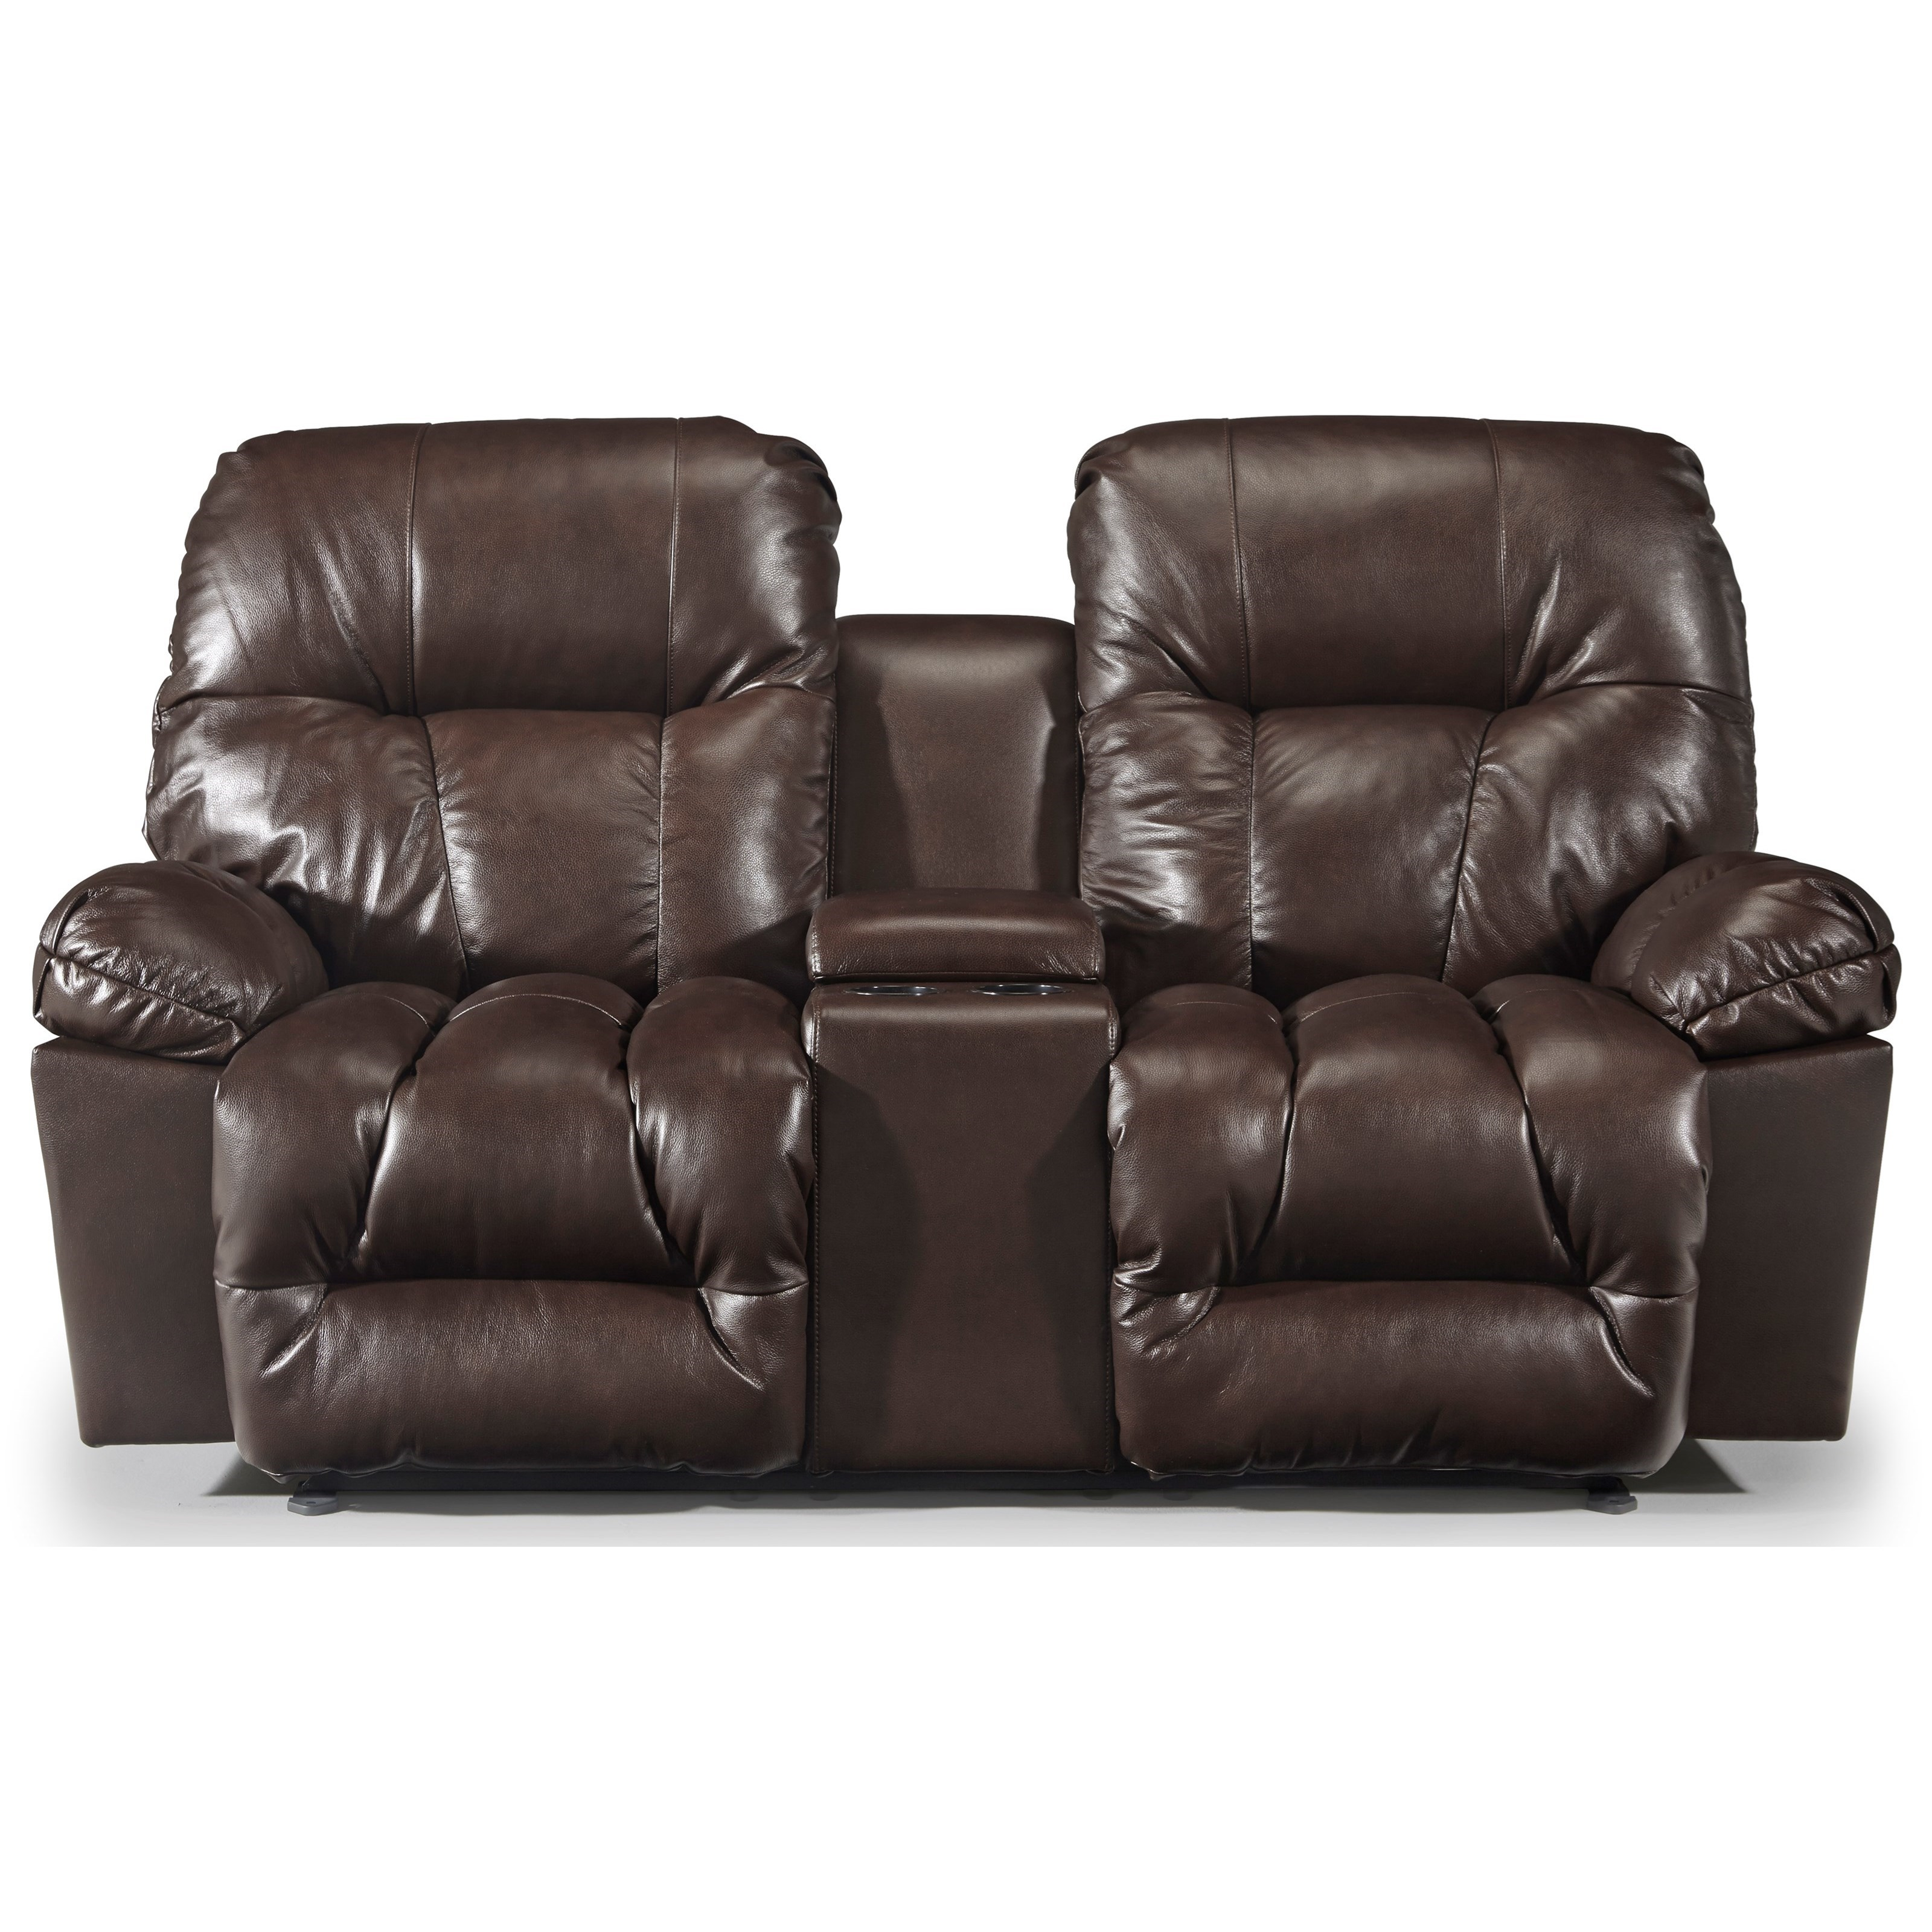 Retreat Power Reclining Space Saver Console Loveseat by Best Home Furnishings at Baer's Furniture